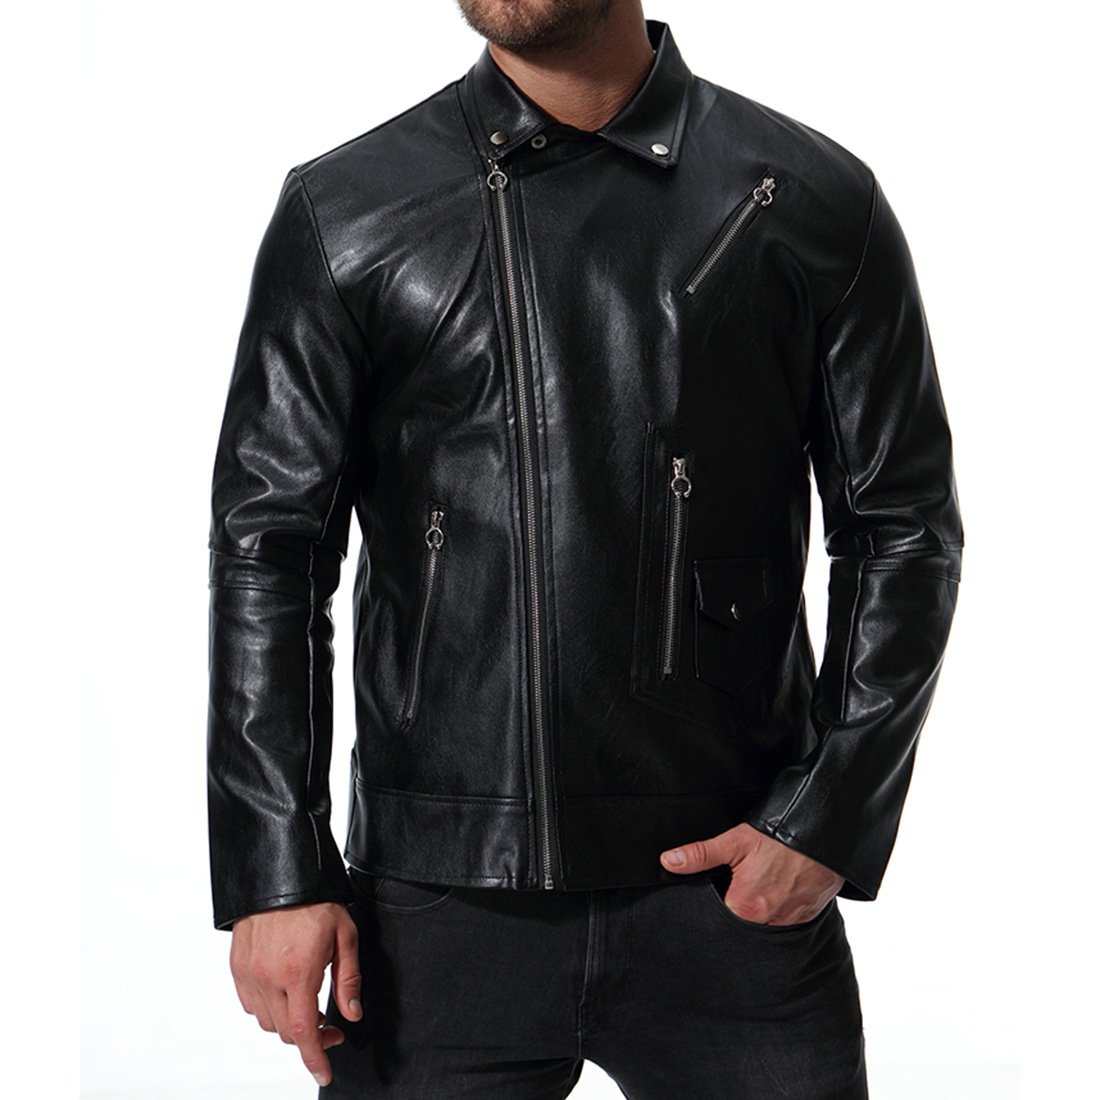 2018 Autumn New Style Europe And America Fashion-Men Locomotive Multi-Zipper Leather Coat Large Size Leather Jacket XB028